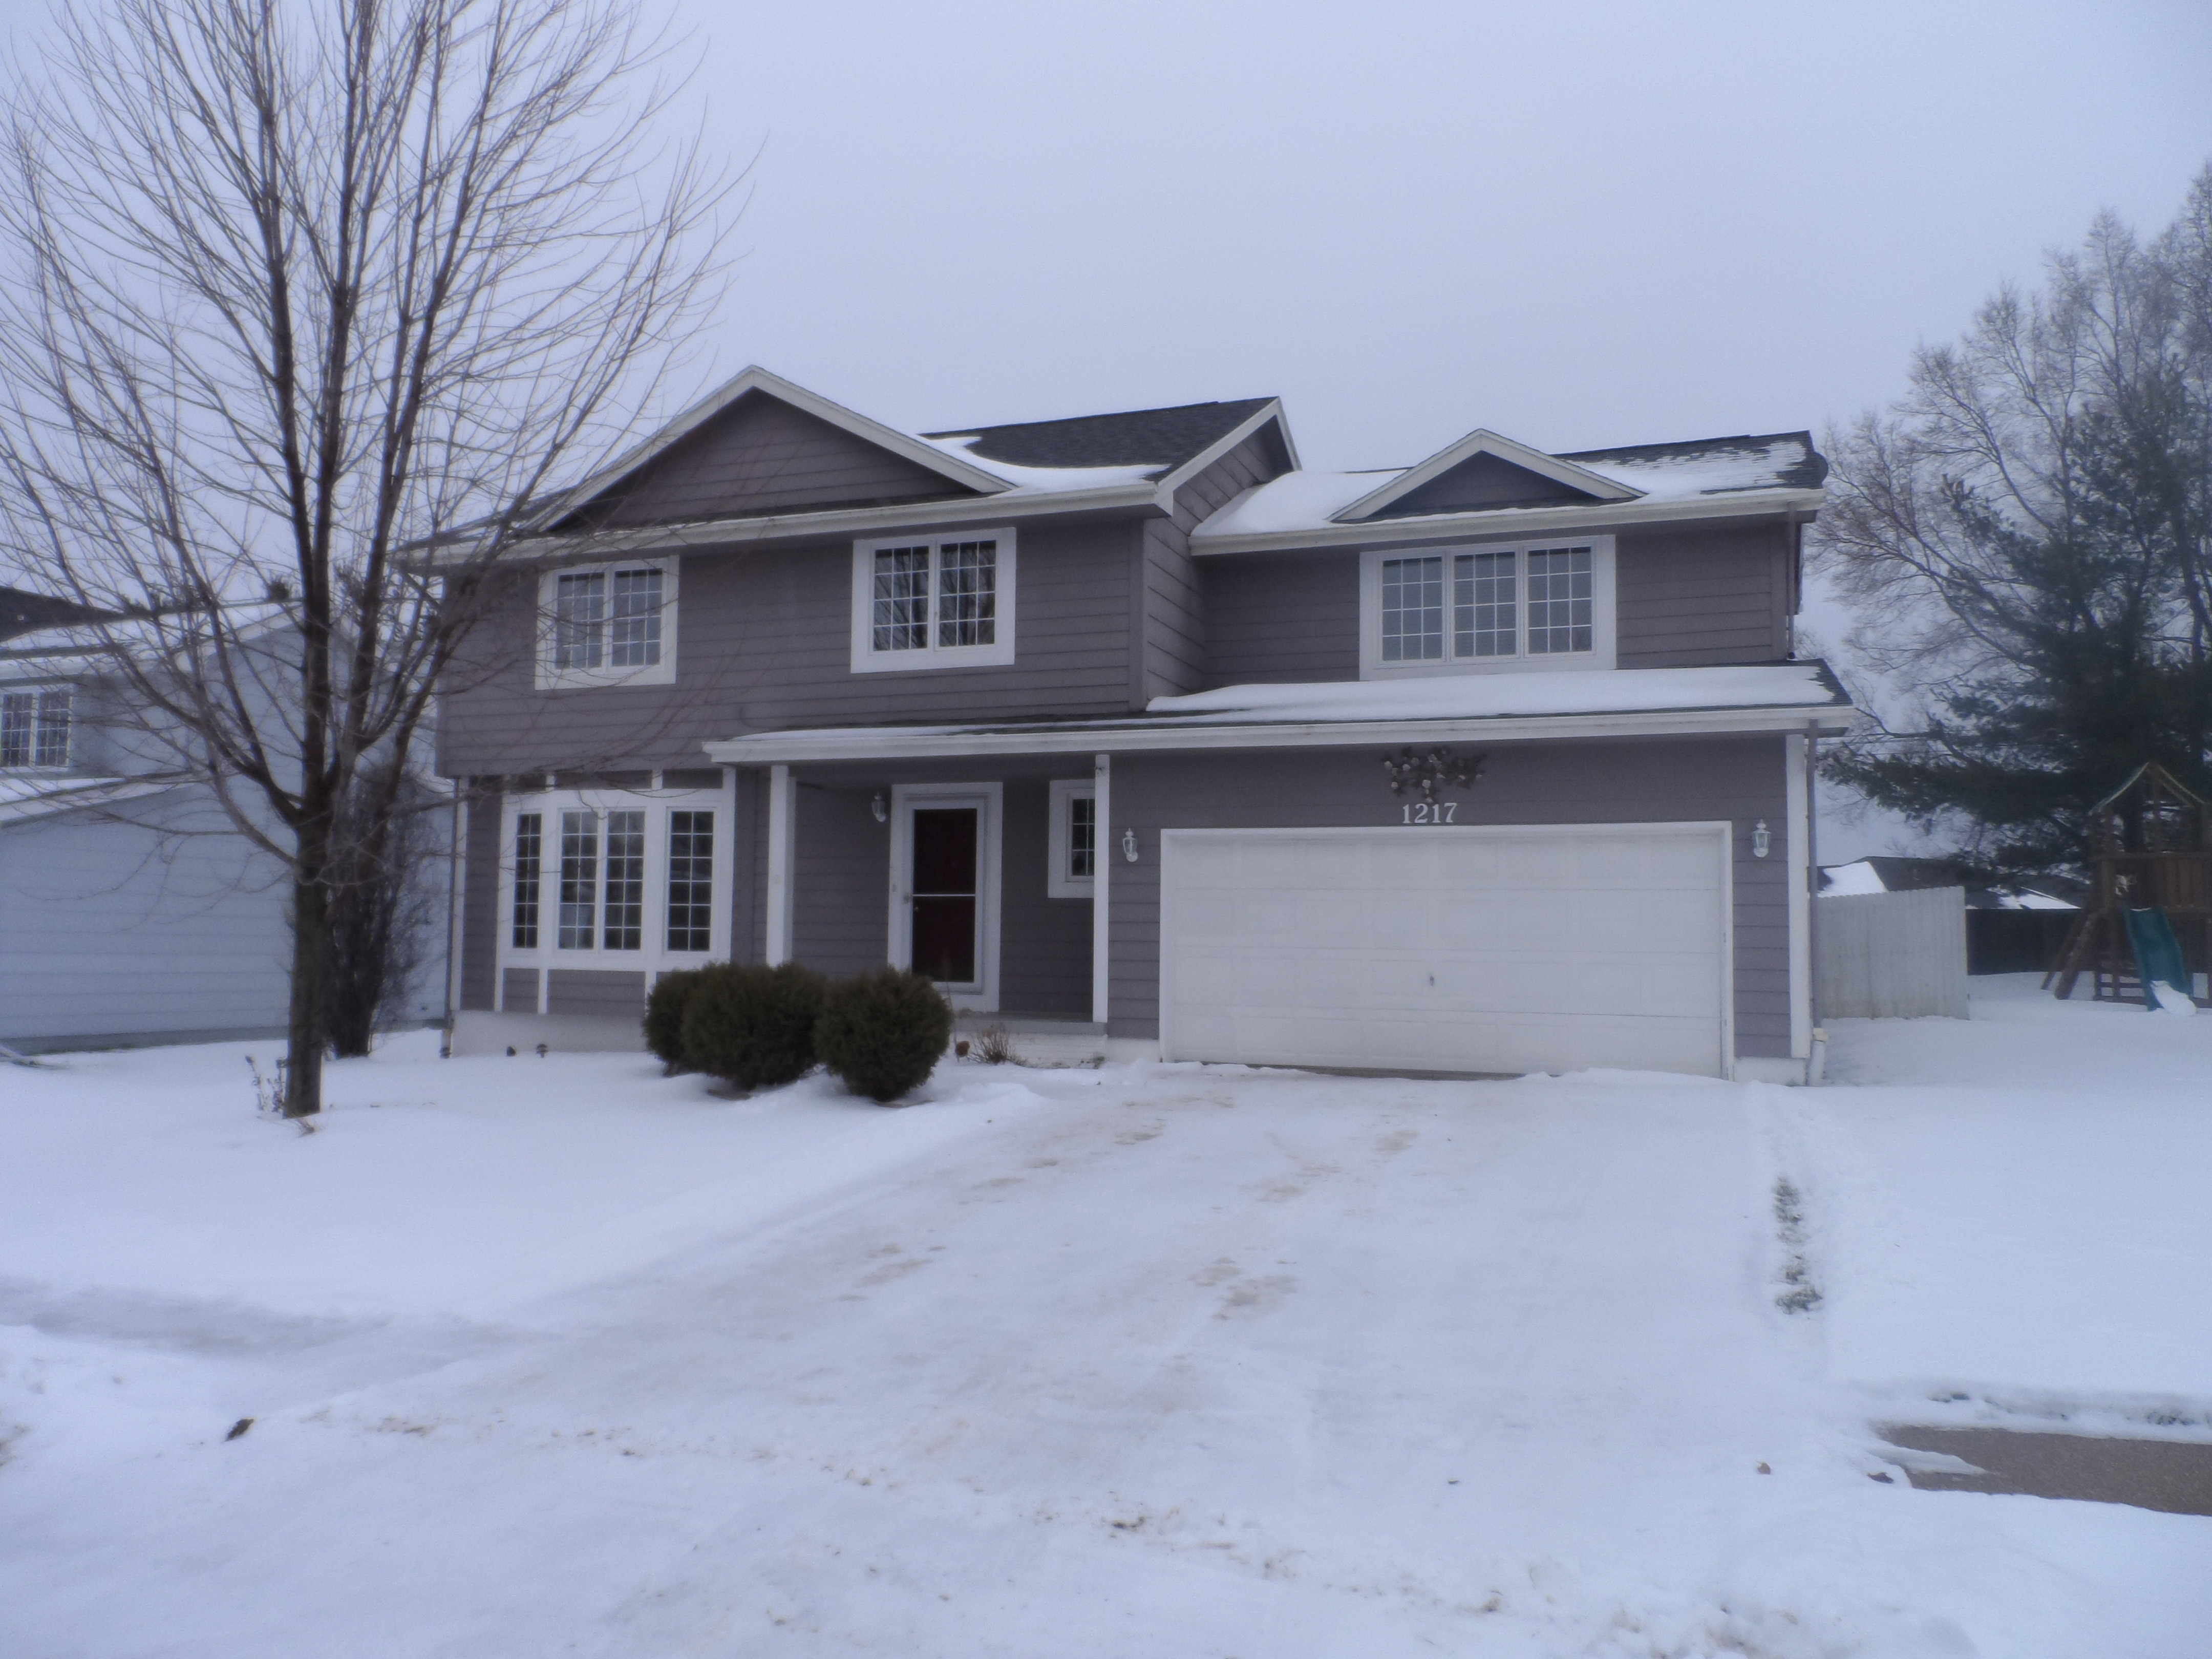 How Does The Home Inspection Work In The Winter Months